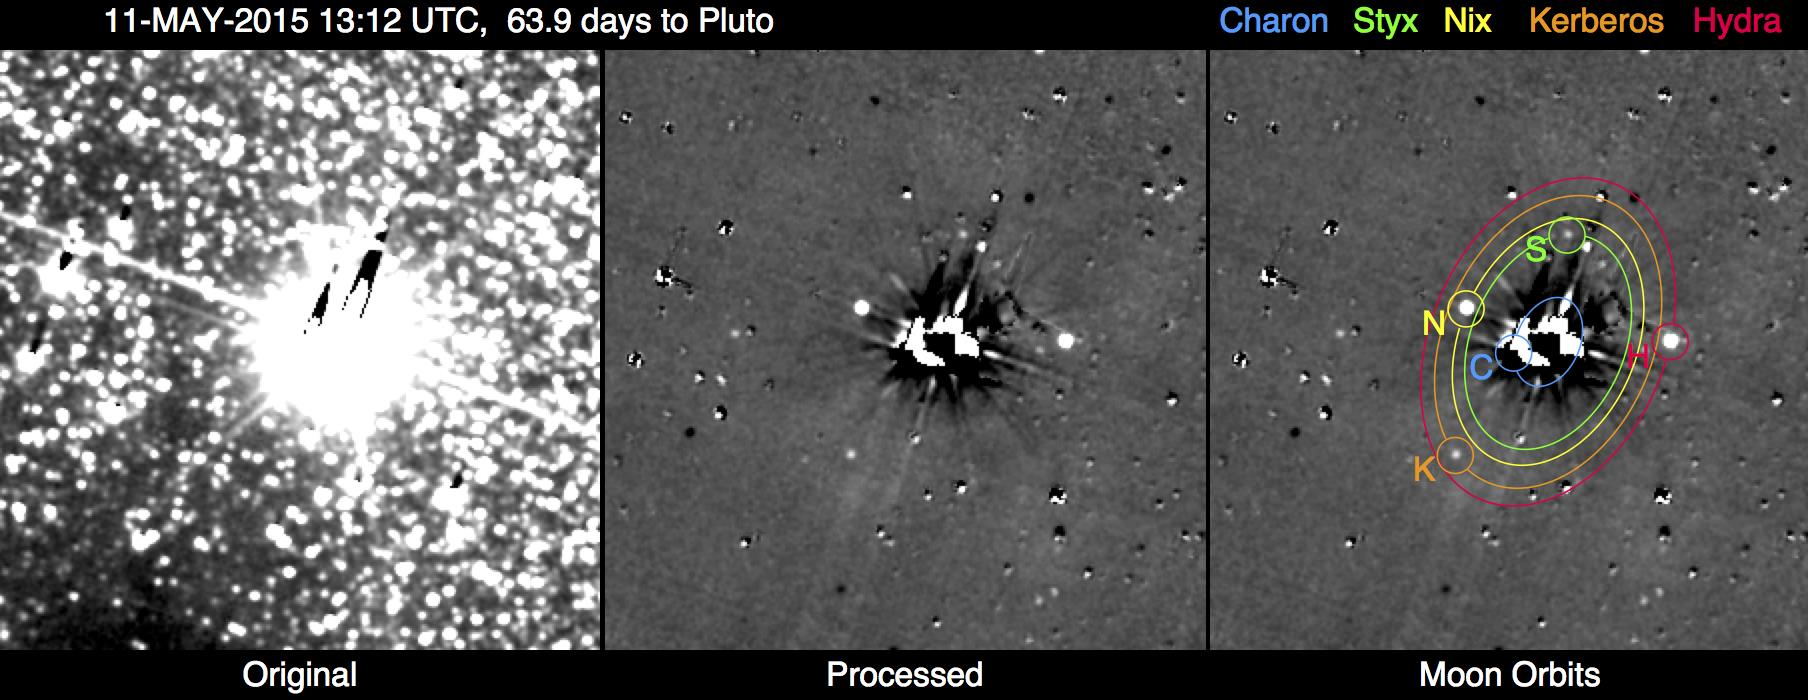 Kerberos Moon Of Plluto: New Horizons Team Completes First Search For Pluto System